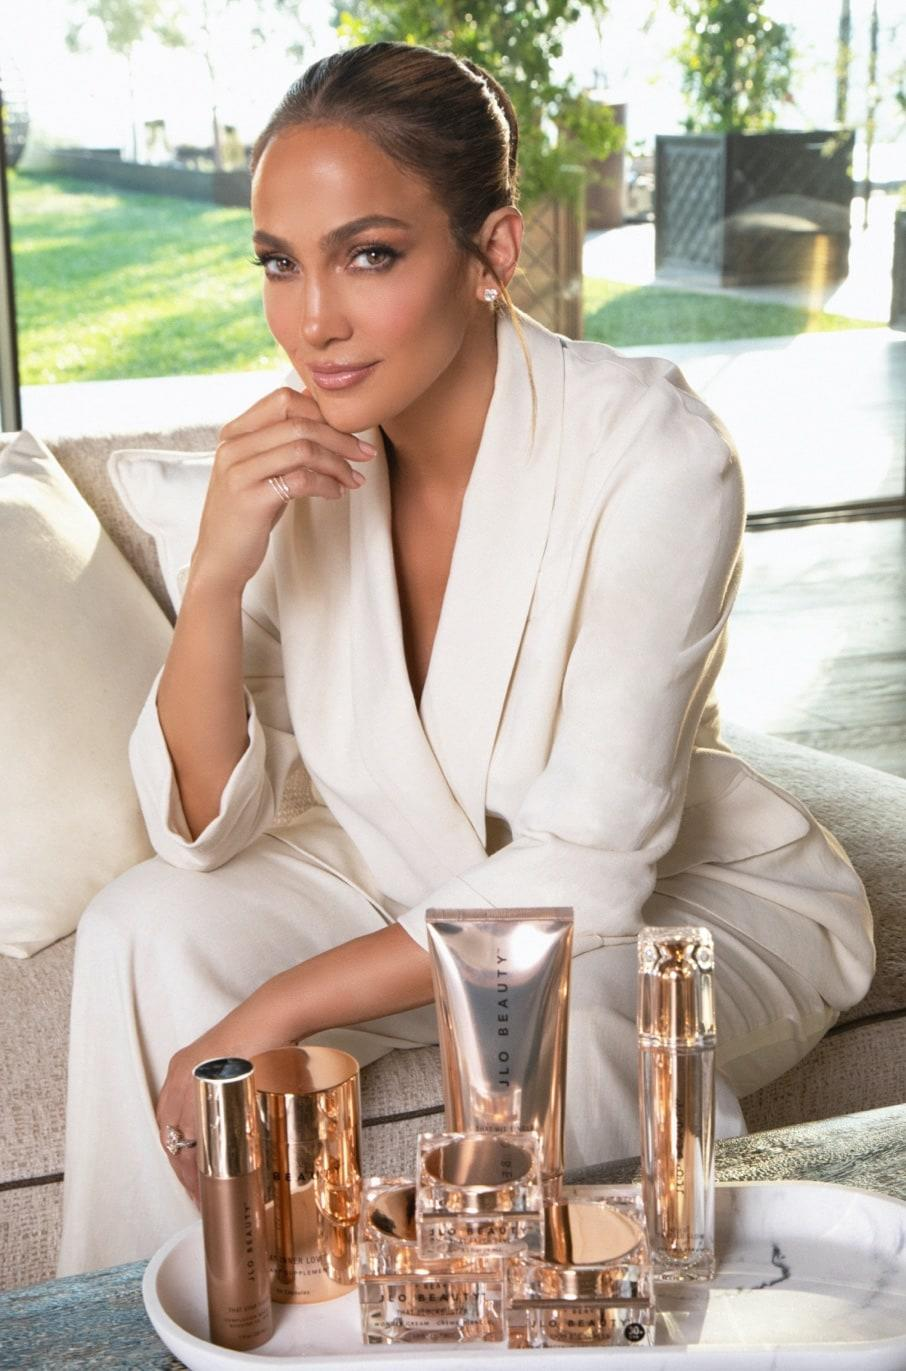 (Photo: JLo Beauty)